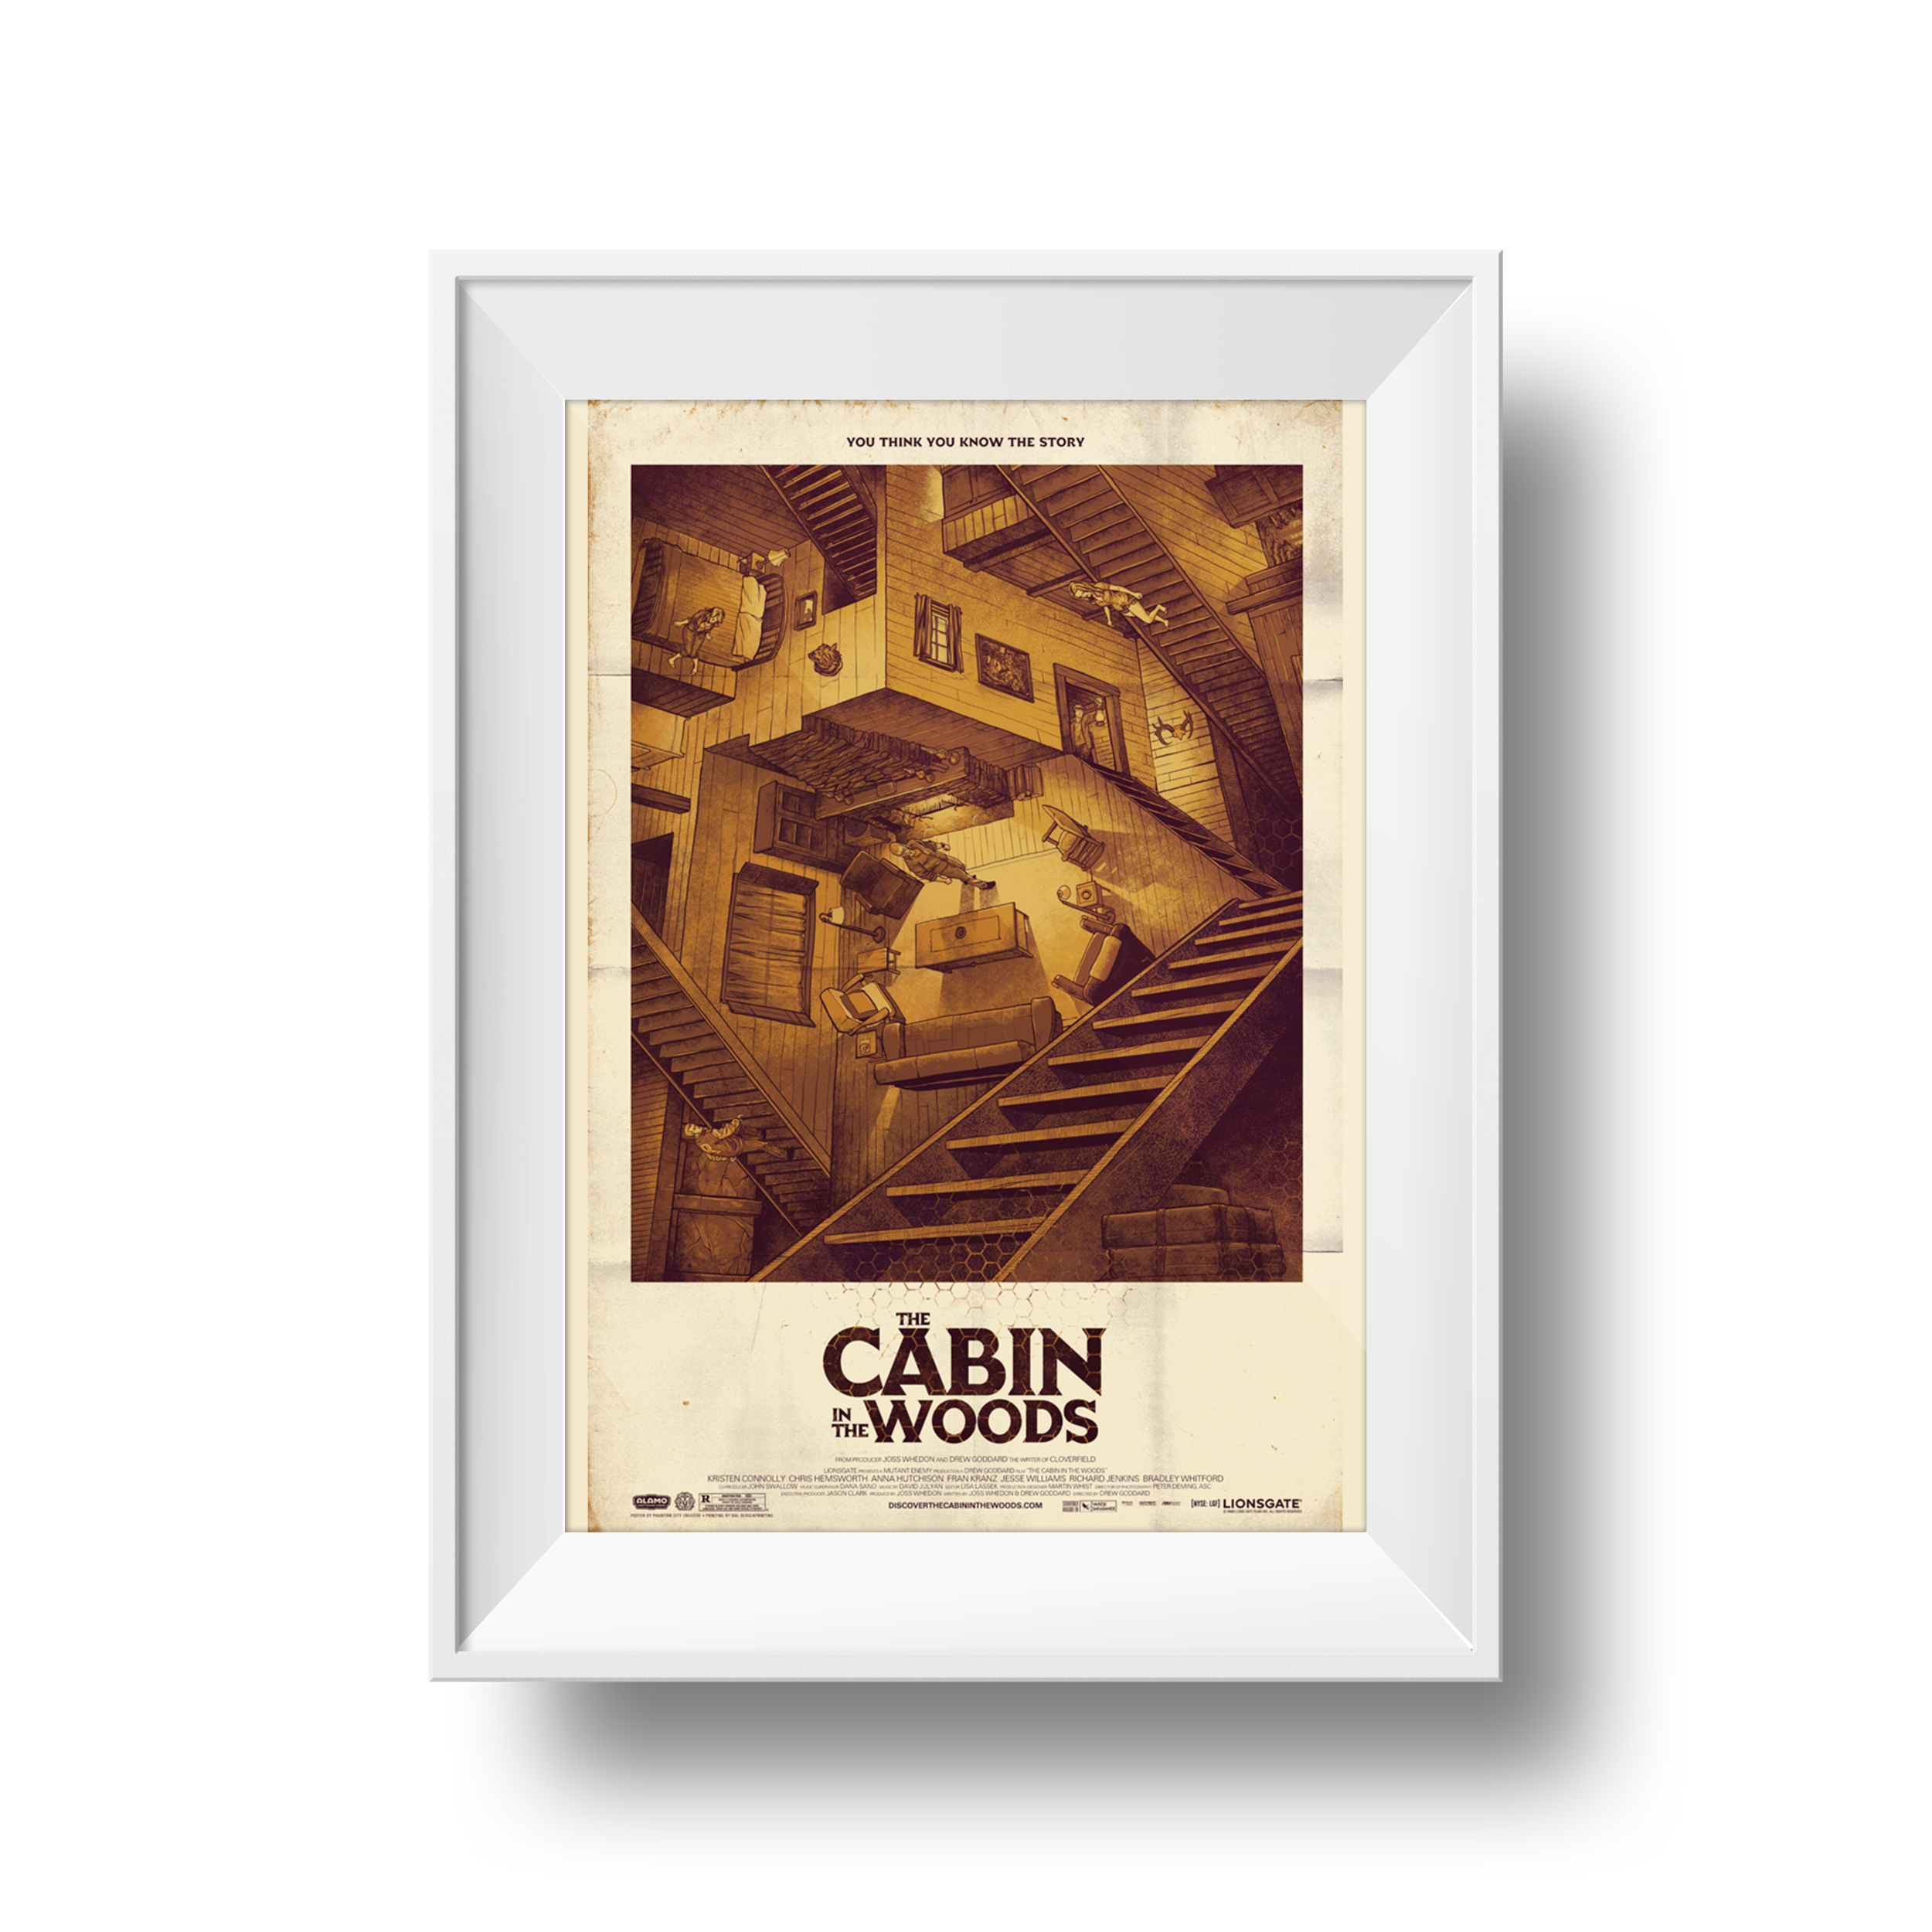 Cabin in the Woods | Phantom City Creative | 24 x 36